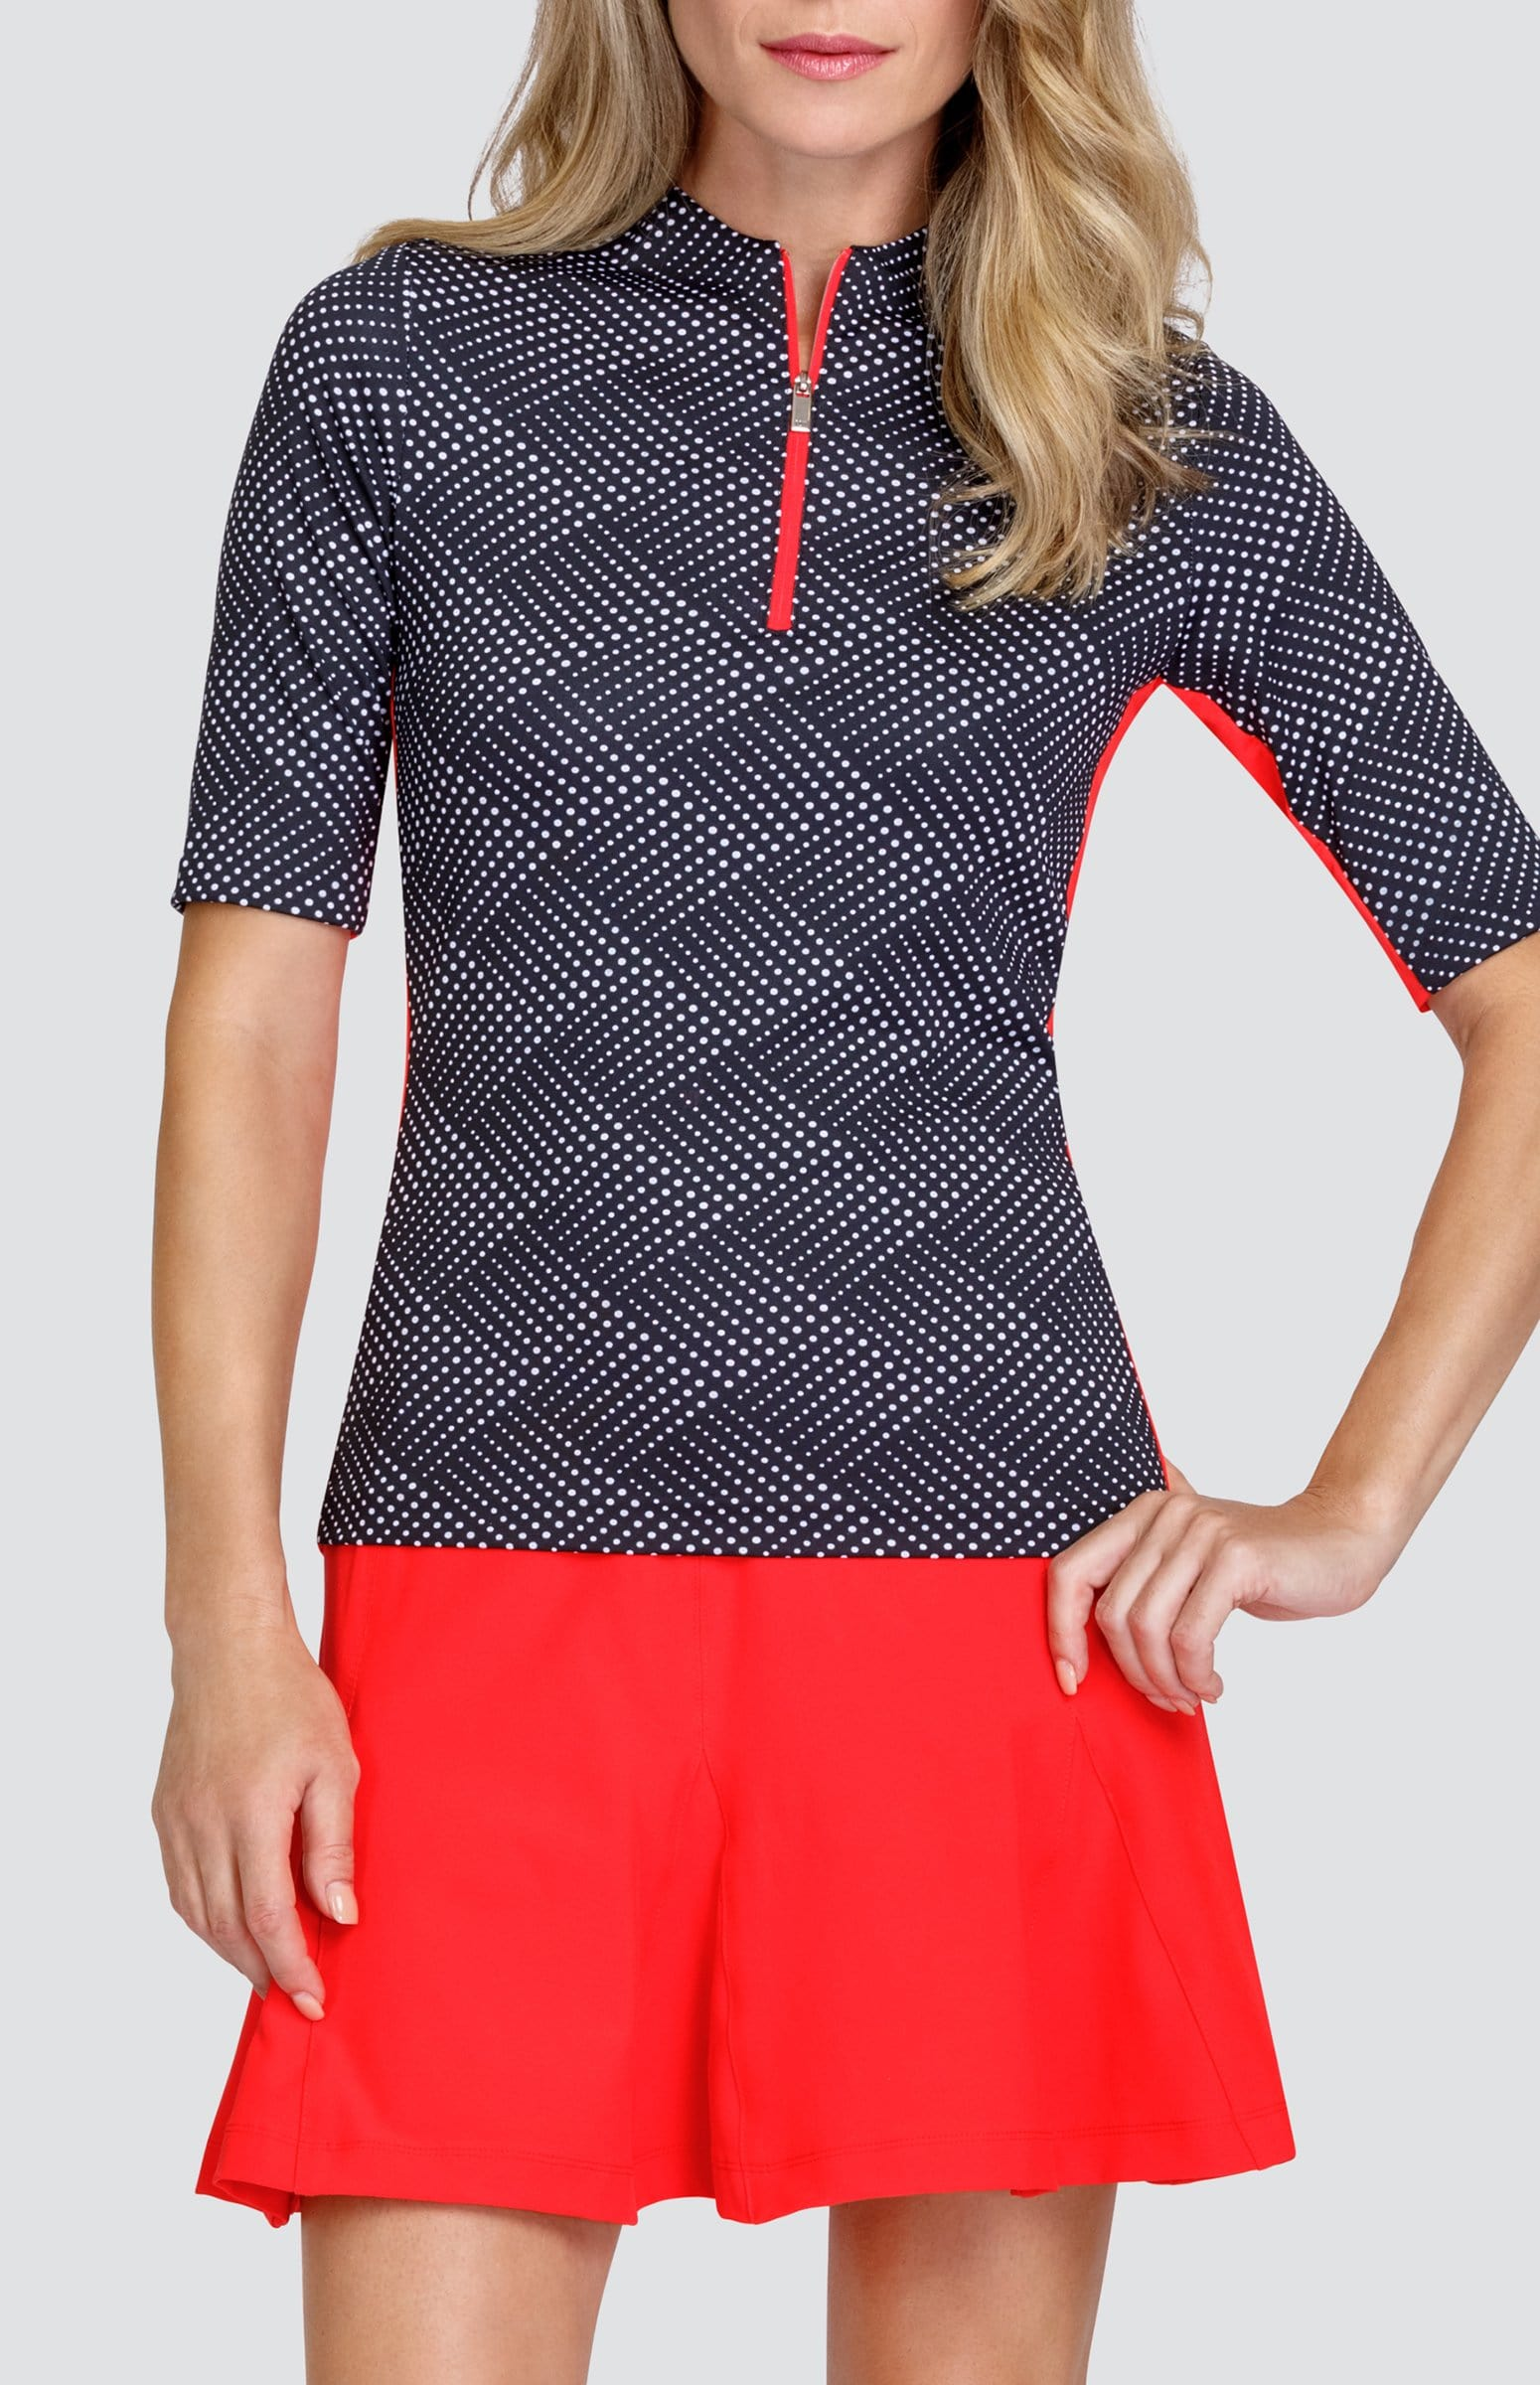 Callie Top - Wave Dot